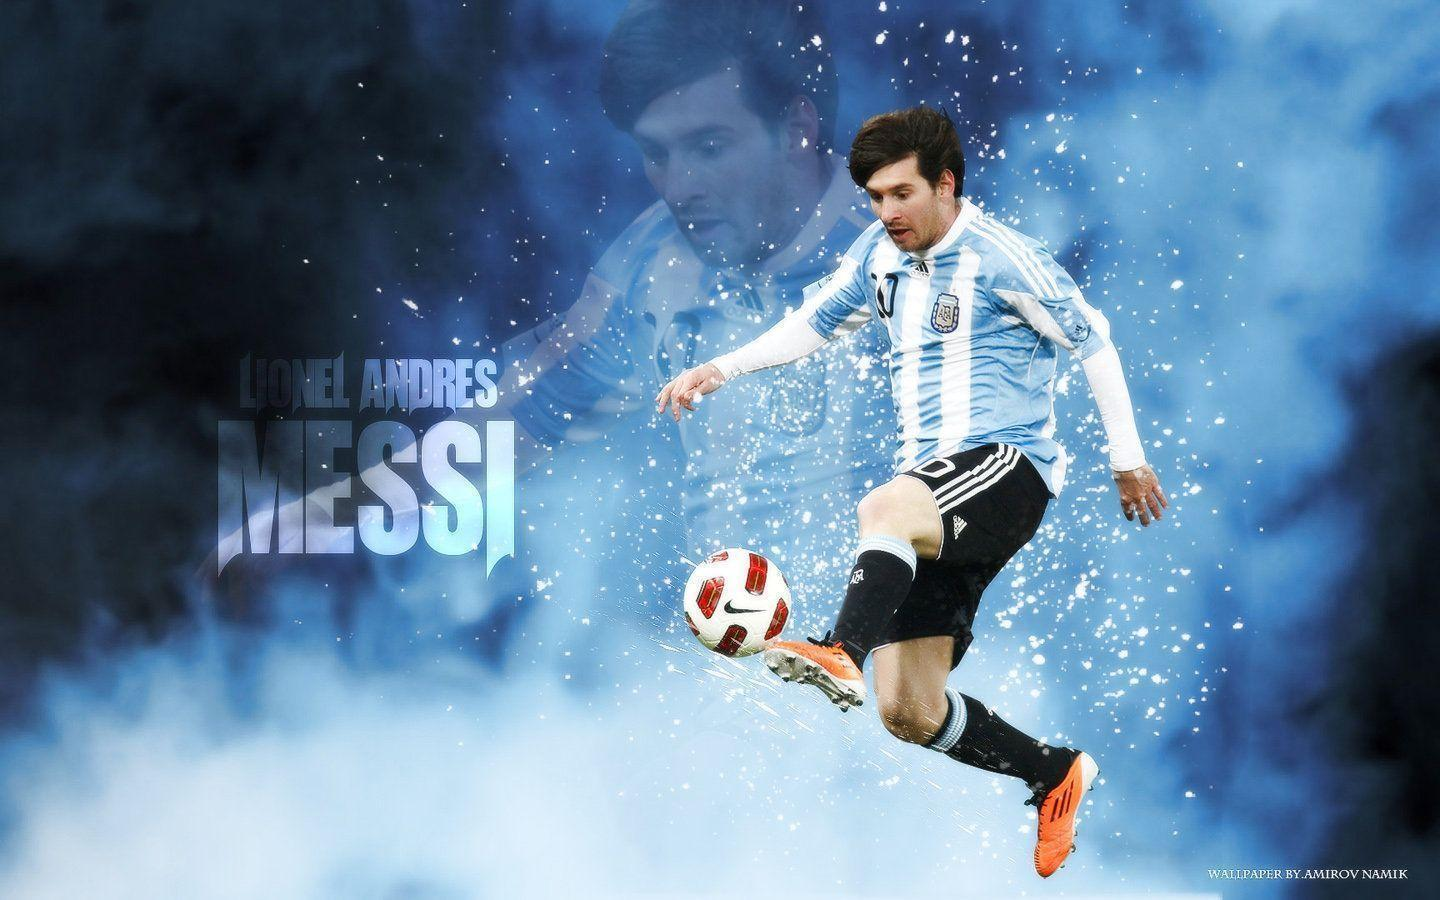 Lionel Messi Wallpapers - Digital HD Photos